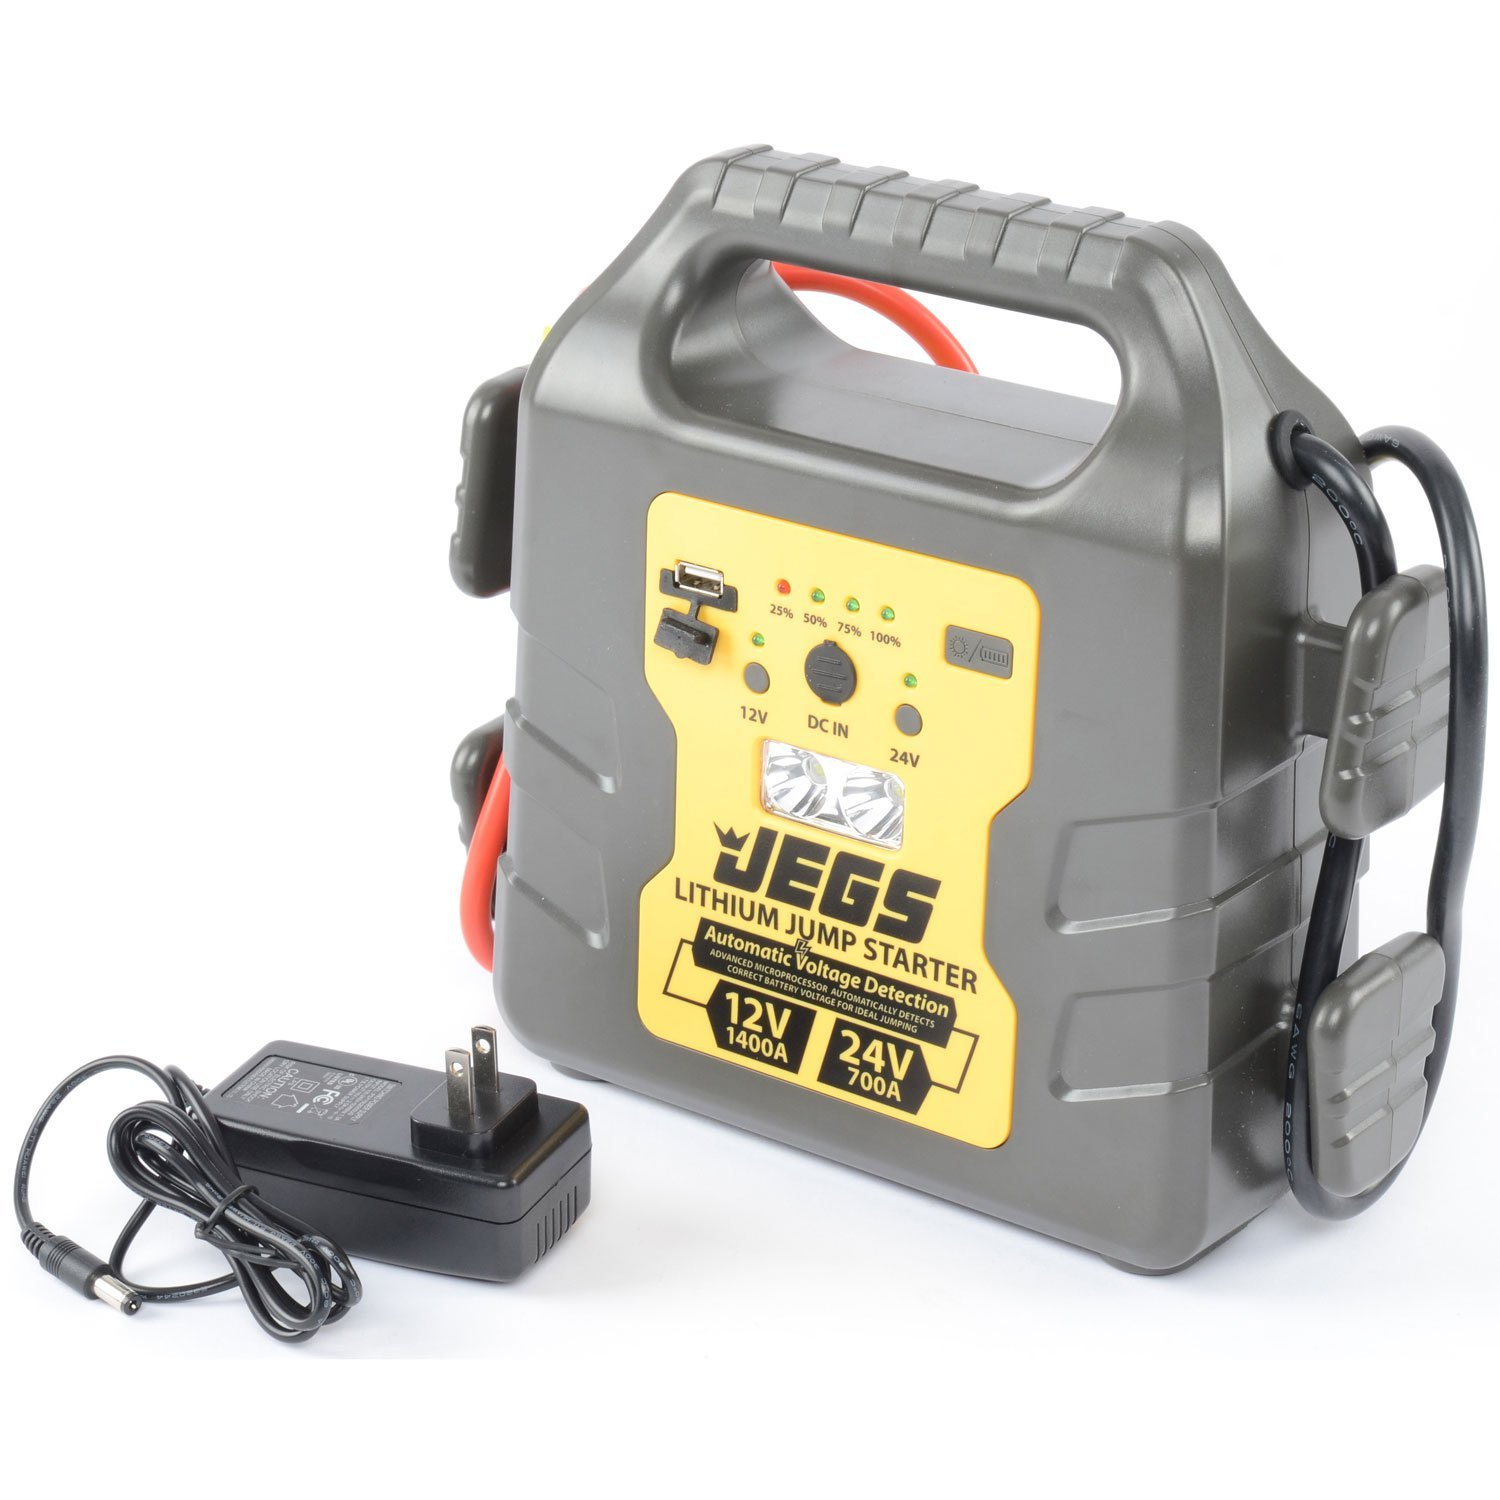 Jegs Performance Products 81952 Lithium Jump Starter Short Circuit Protection Car 12v 24v Truck 1400a Peak Current 68 Lbs Automotive